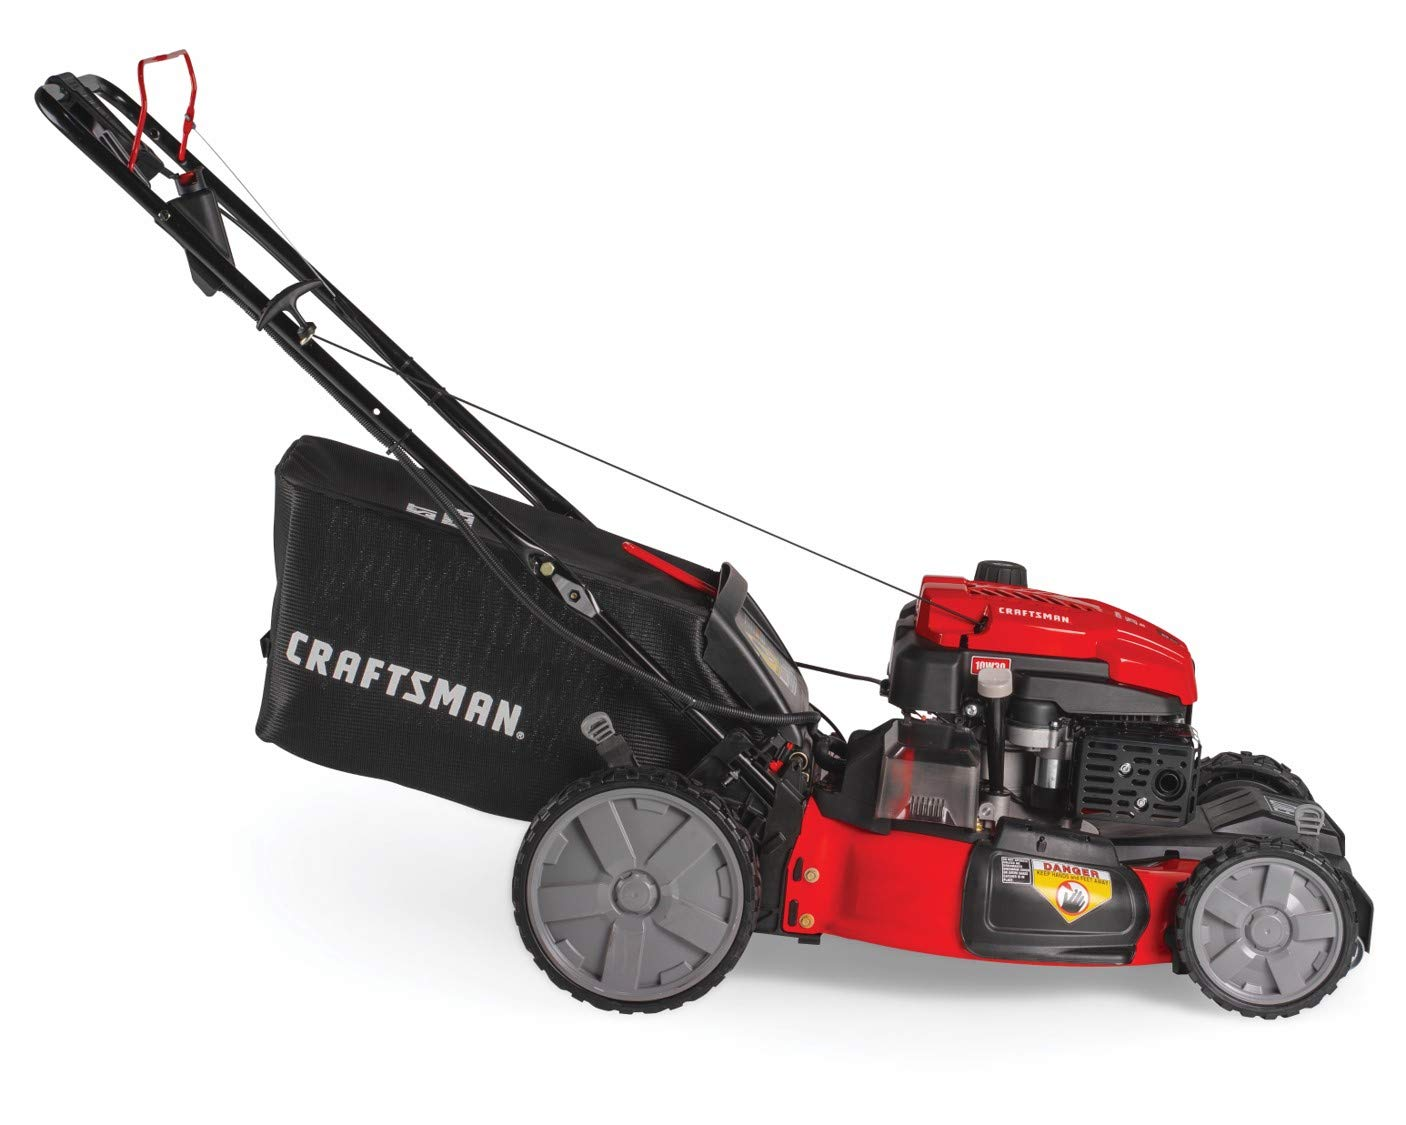 Craftsman M275 159cc 21-Inch 3-in-1 High-Wheeled Self-Propelled FWD Gas Powered Lawn Mower, with Bagger, Red 3 POWERFUL 159CC OHV GAS ENGINE: Powerful gas engine with 21-inch cutting deck to trim grass in one quick pass. 3-IN-1 CAPABILITIES: Unit has side discharge, rear discharge, and mulching capabilities. FRONT WHEEL DRIVE AND SELF-PROPELLED: Move around your yard with less effort at the propulsion speed of your choice.